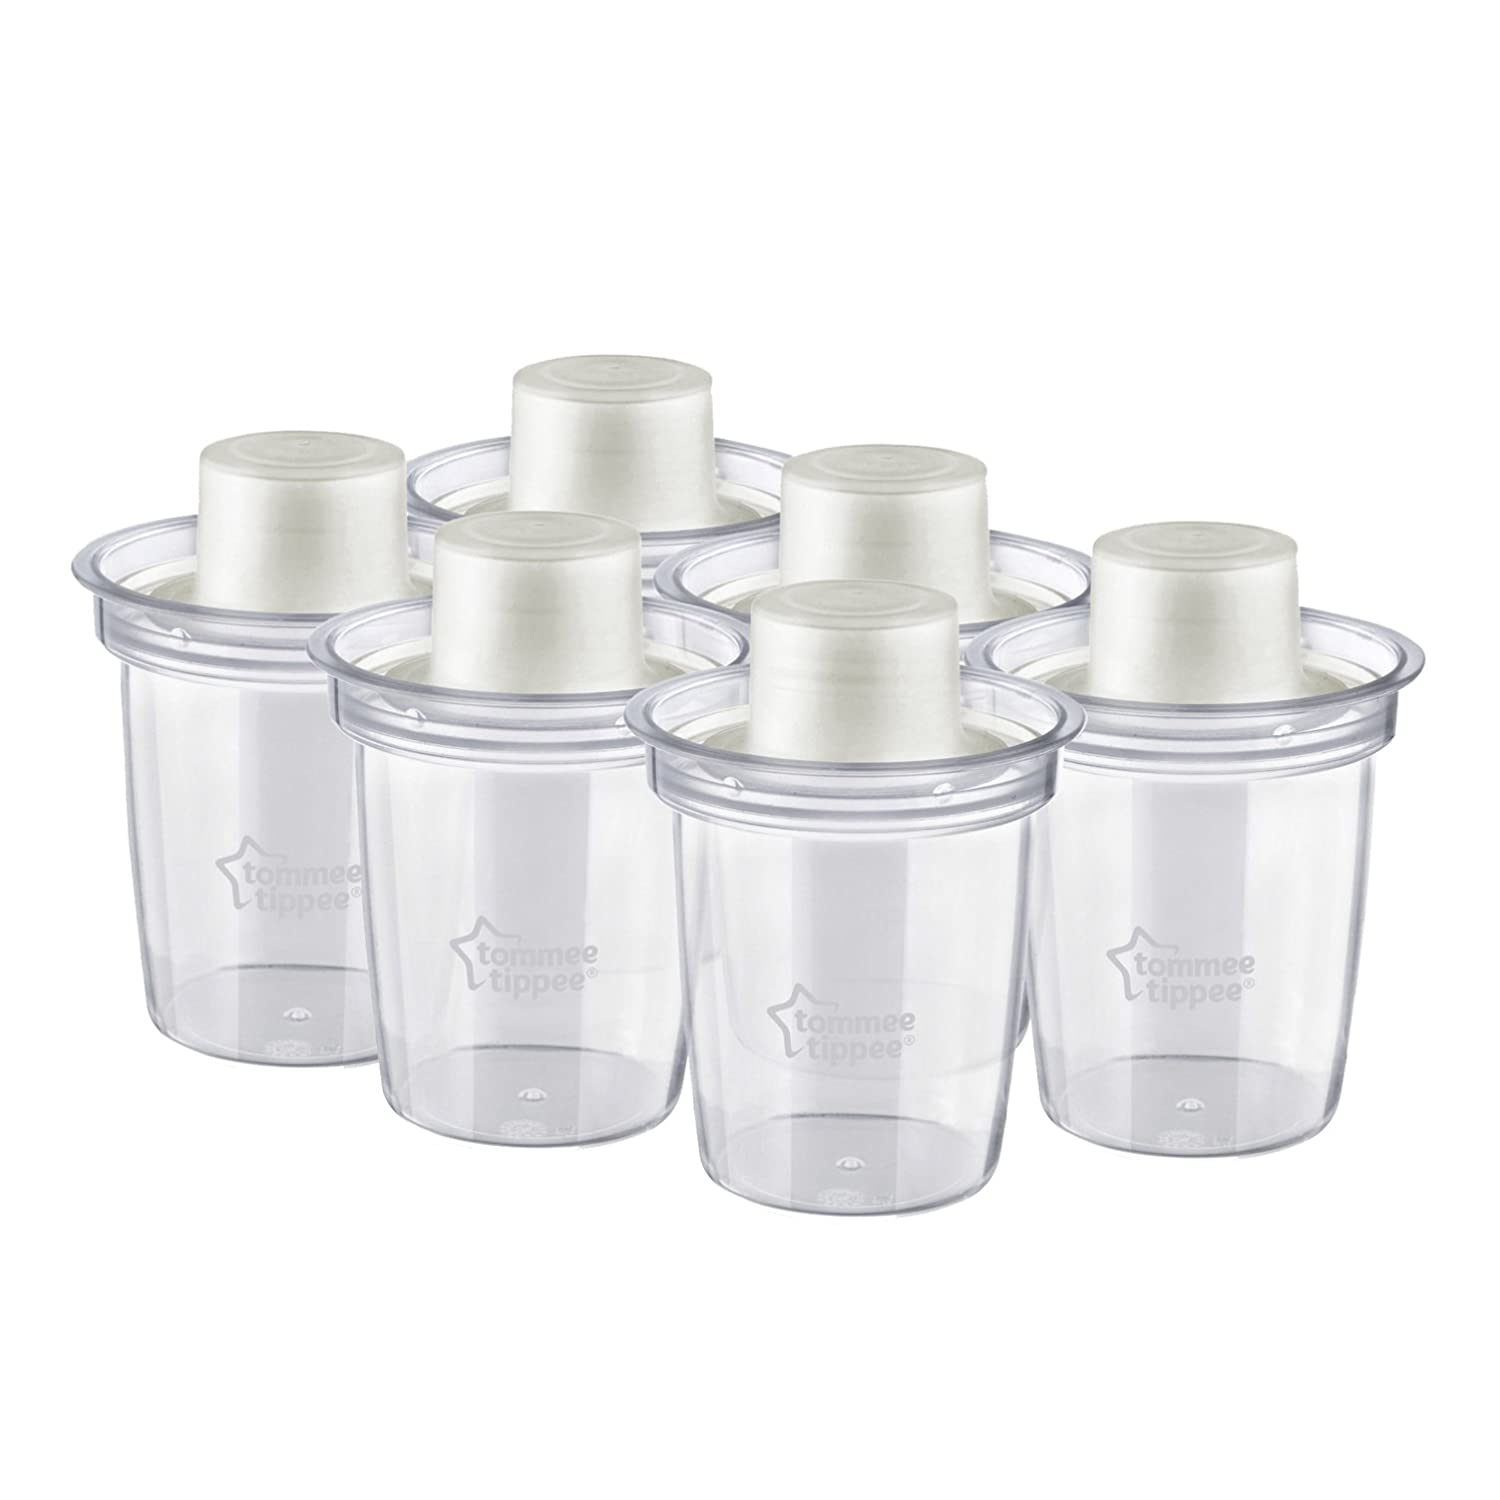 Milchpulverspender Set 6tlg. Mayborn Group 522362